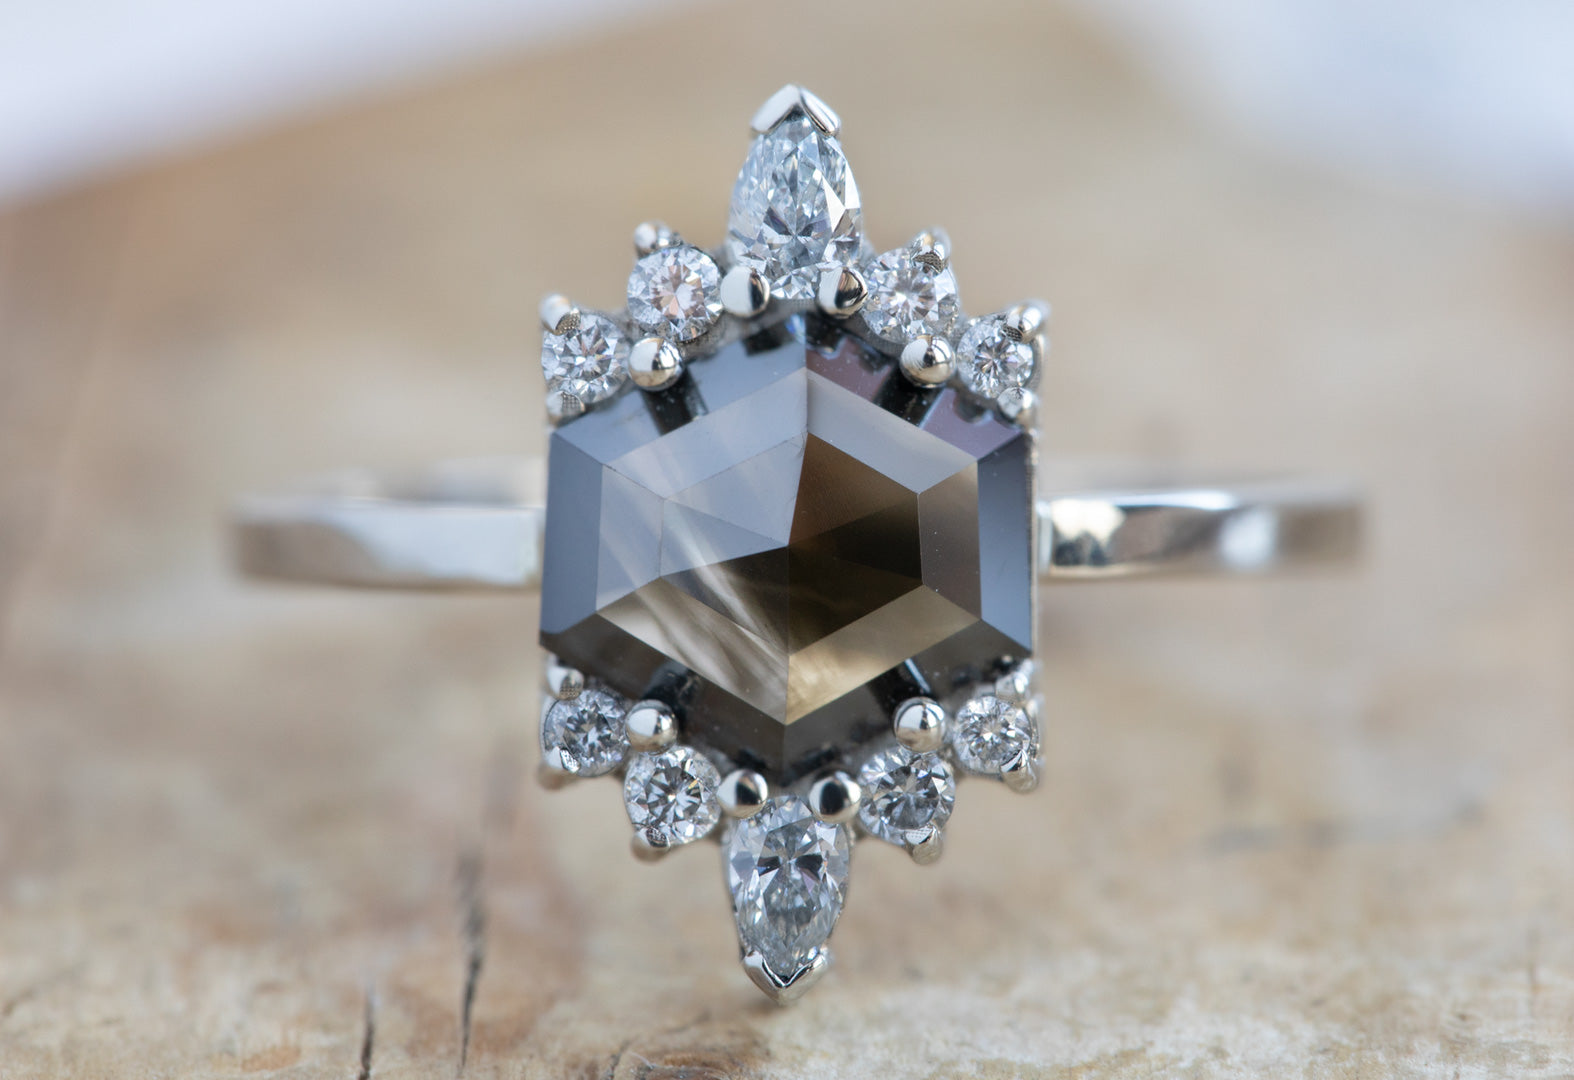 Hexagon-Cut Opalescent Black Diamond Engagement Ring with White Sunbursts